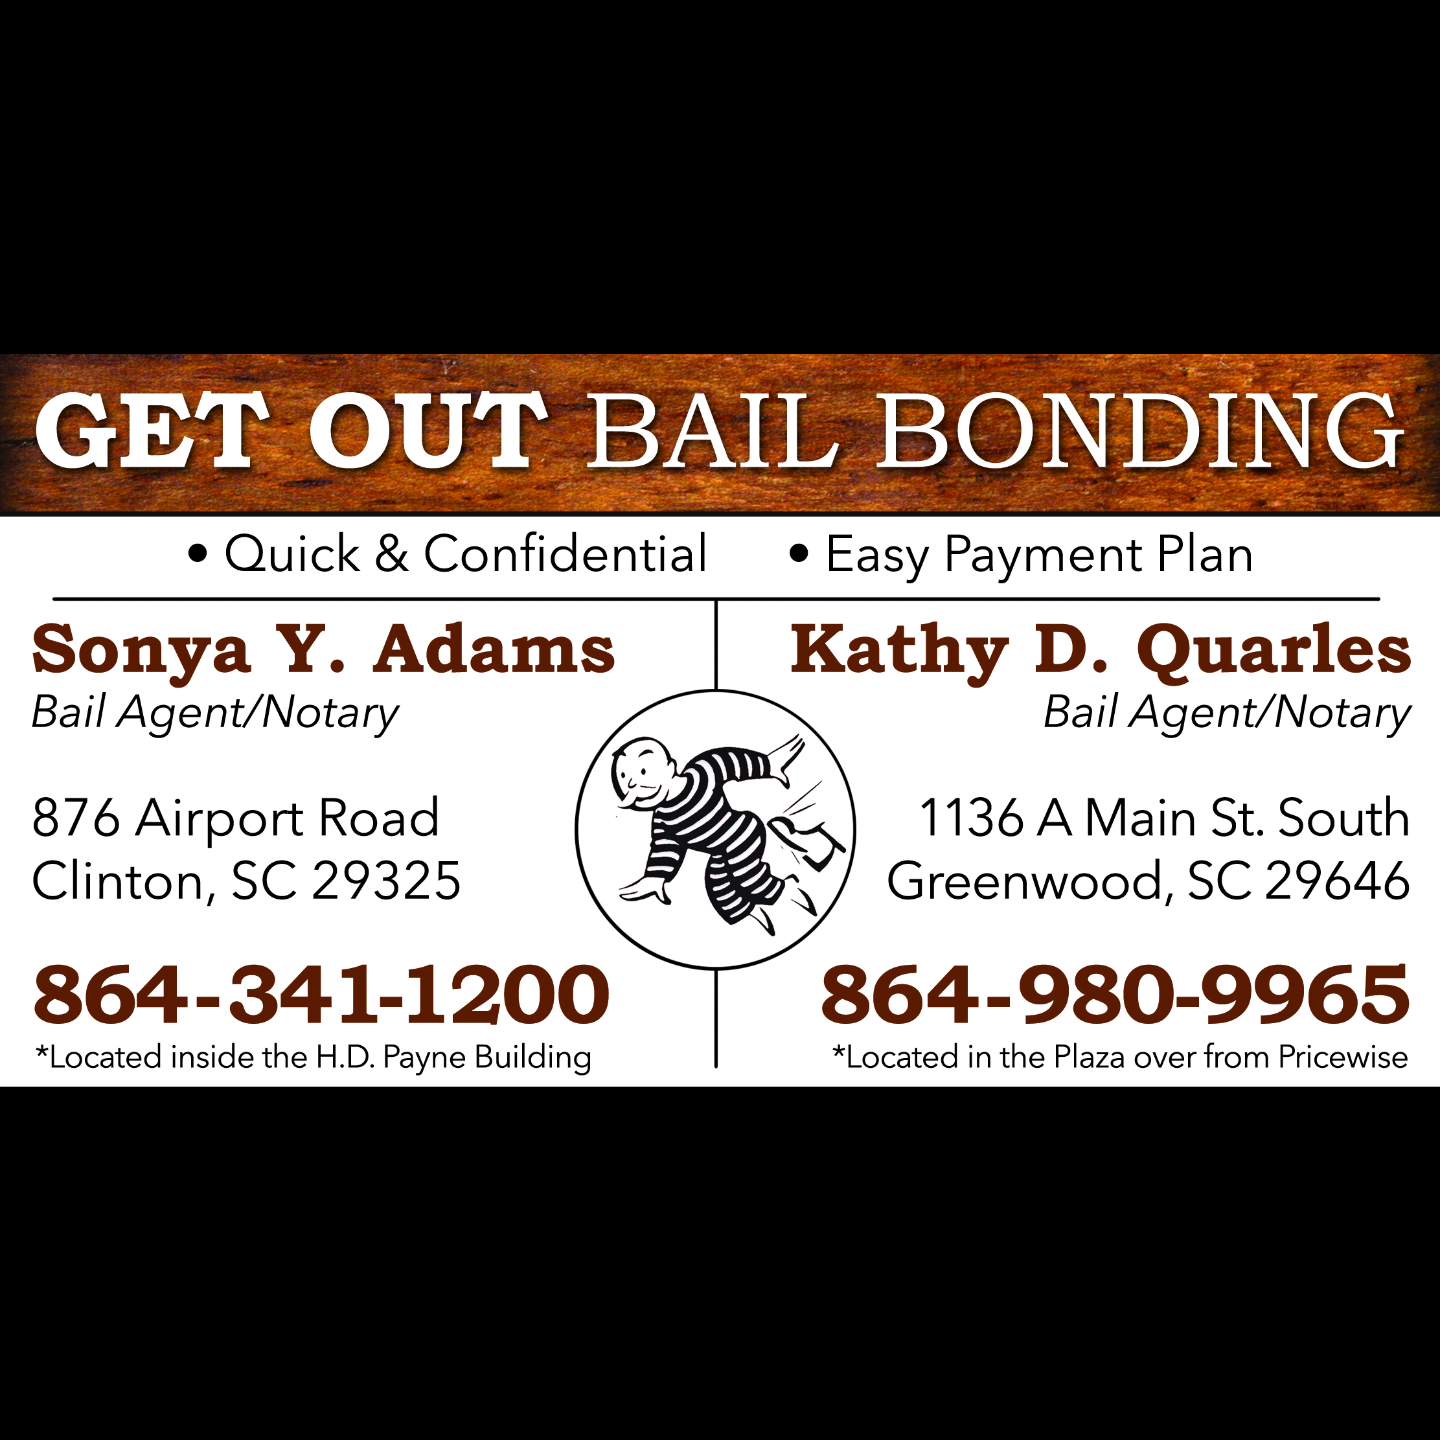 Get Out Bail Bonding